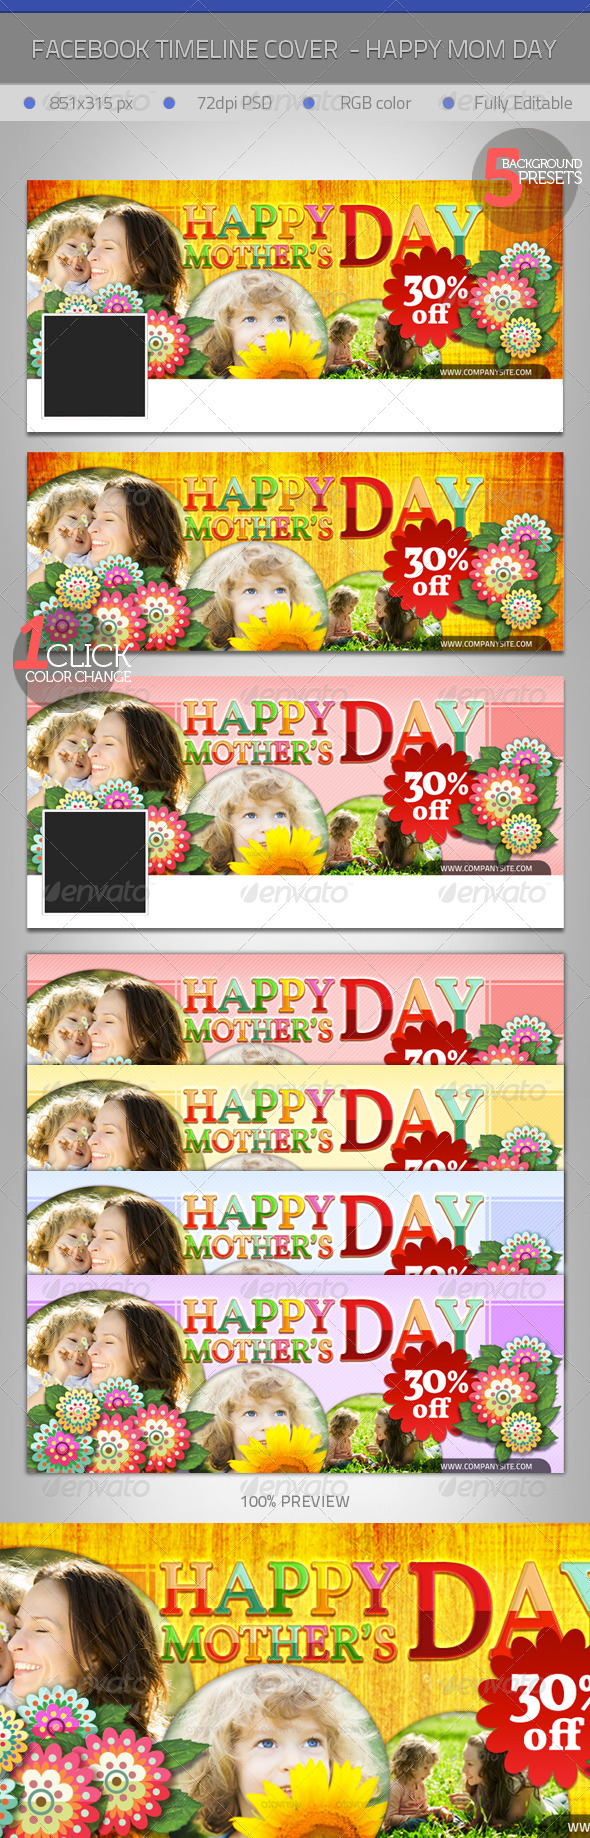 GraphicRiver FB Timeline Cover Mother s Day Greeting 4280420